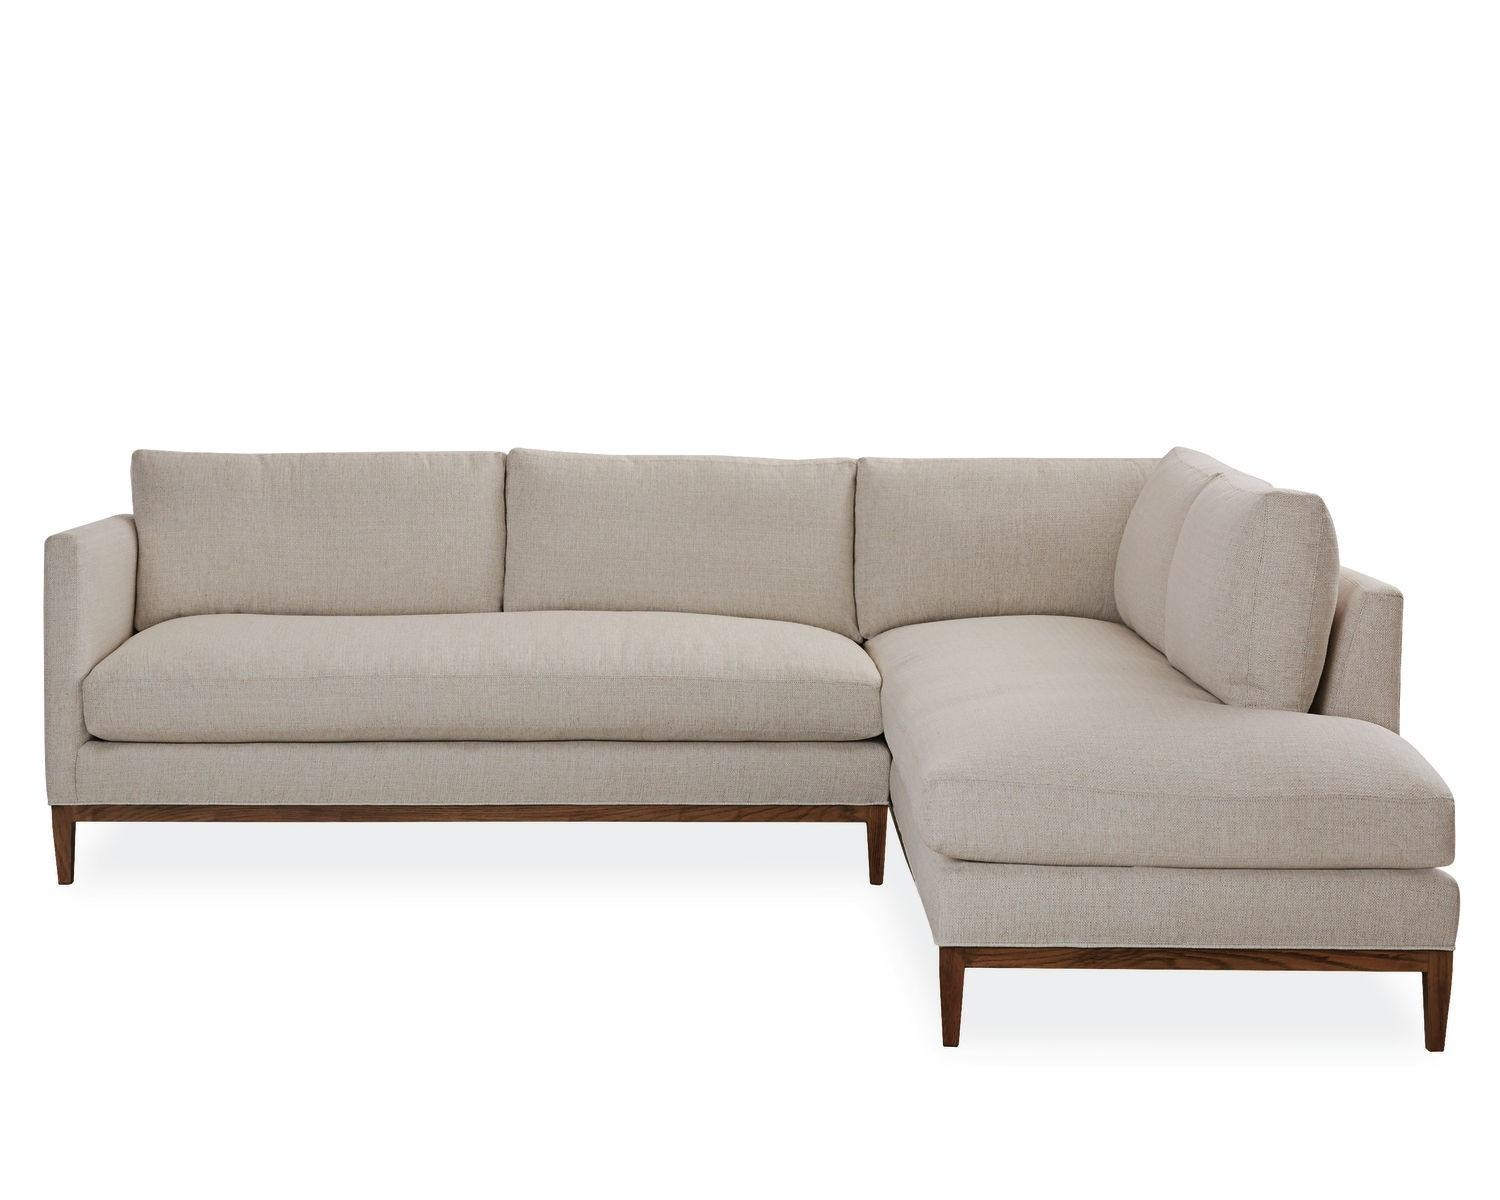 American Furniture | Palm Springs Chaise Sectional | Lee Industries Within Lee Industries Sectional Sofa (Image 9 of 20)